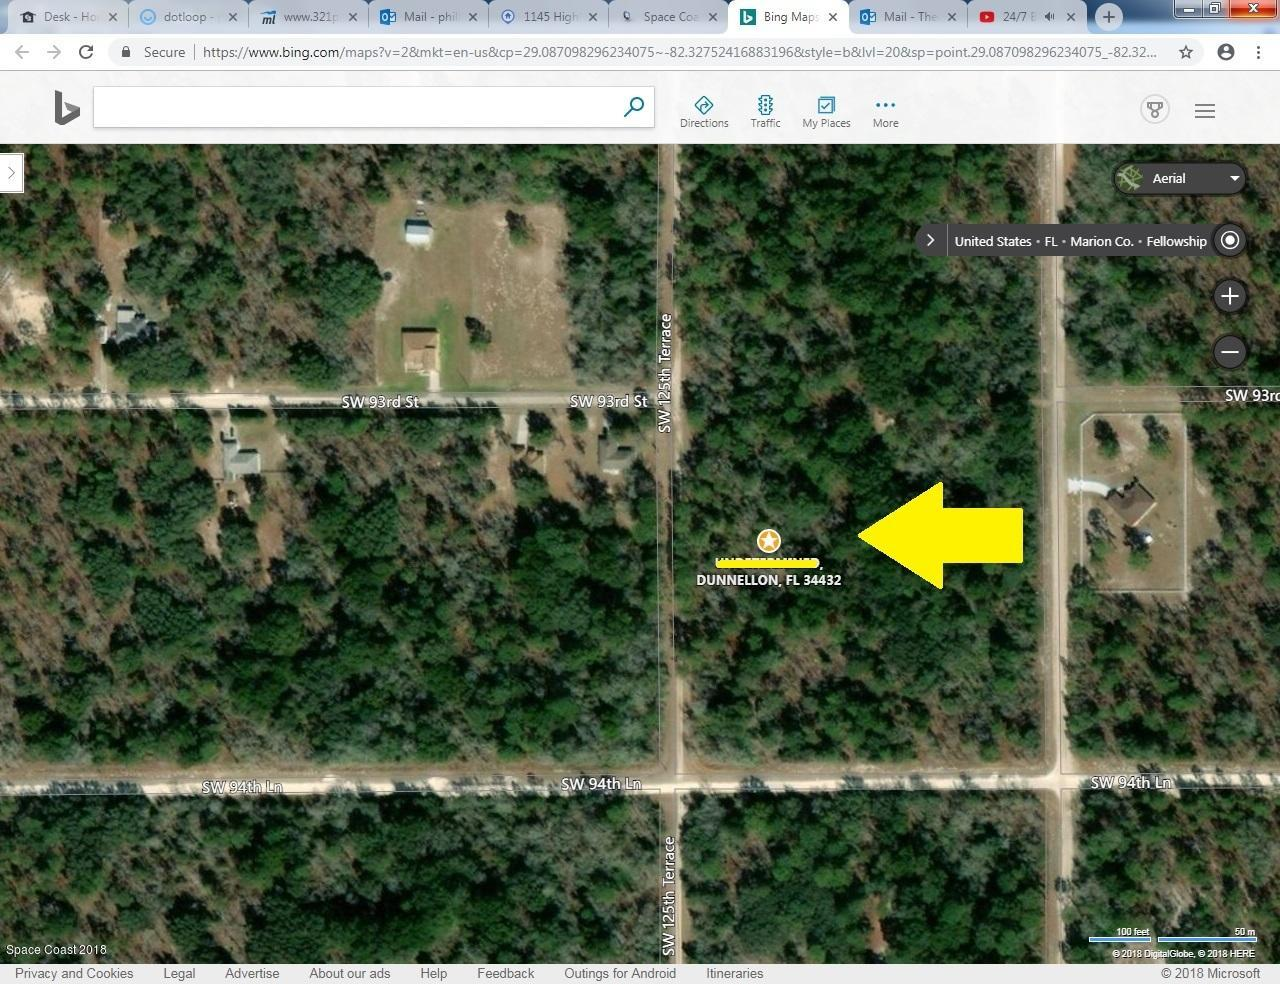 Terreno por un Venta en SW 125th Ter, Dunnelon, Fl. 34432 SW 125th Ter, Dunnelon, Fl. 34432 Dunnellon, Florida 34433 Estados Unidos